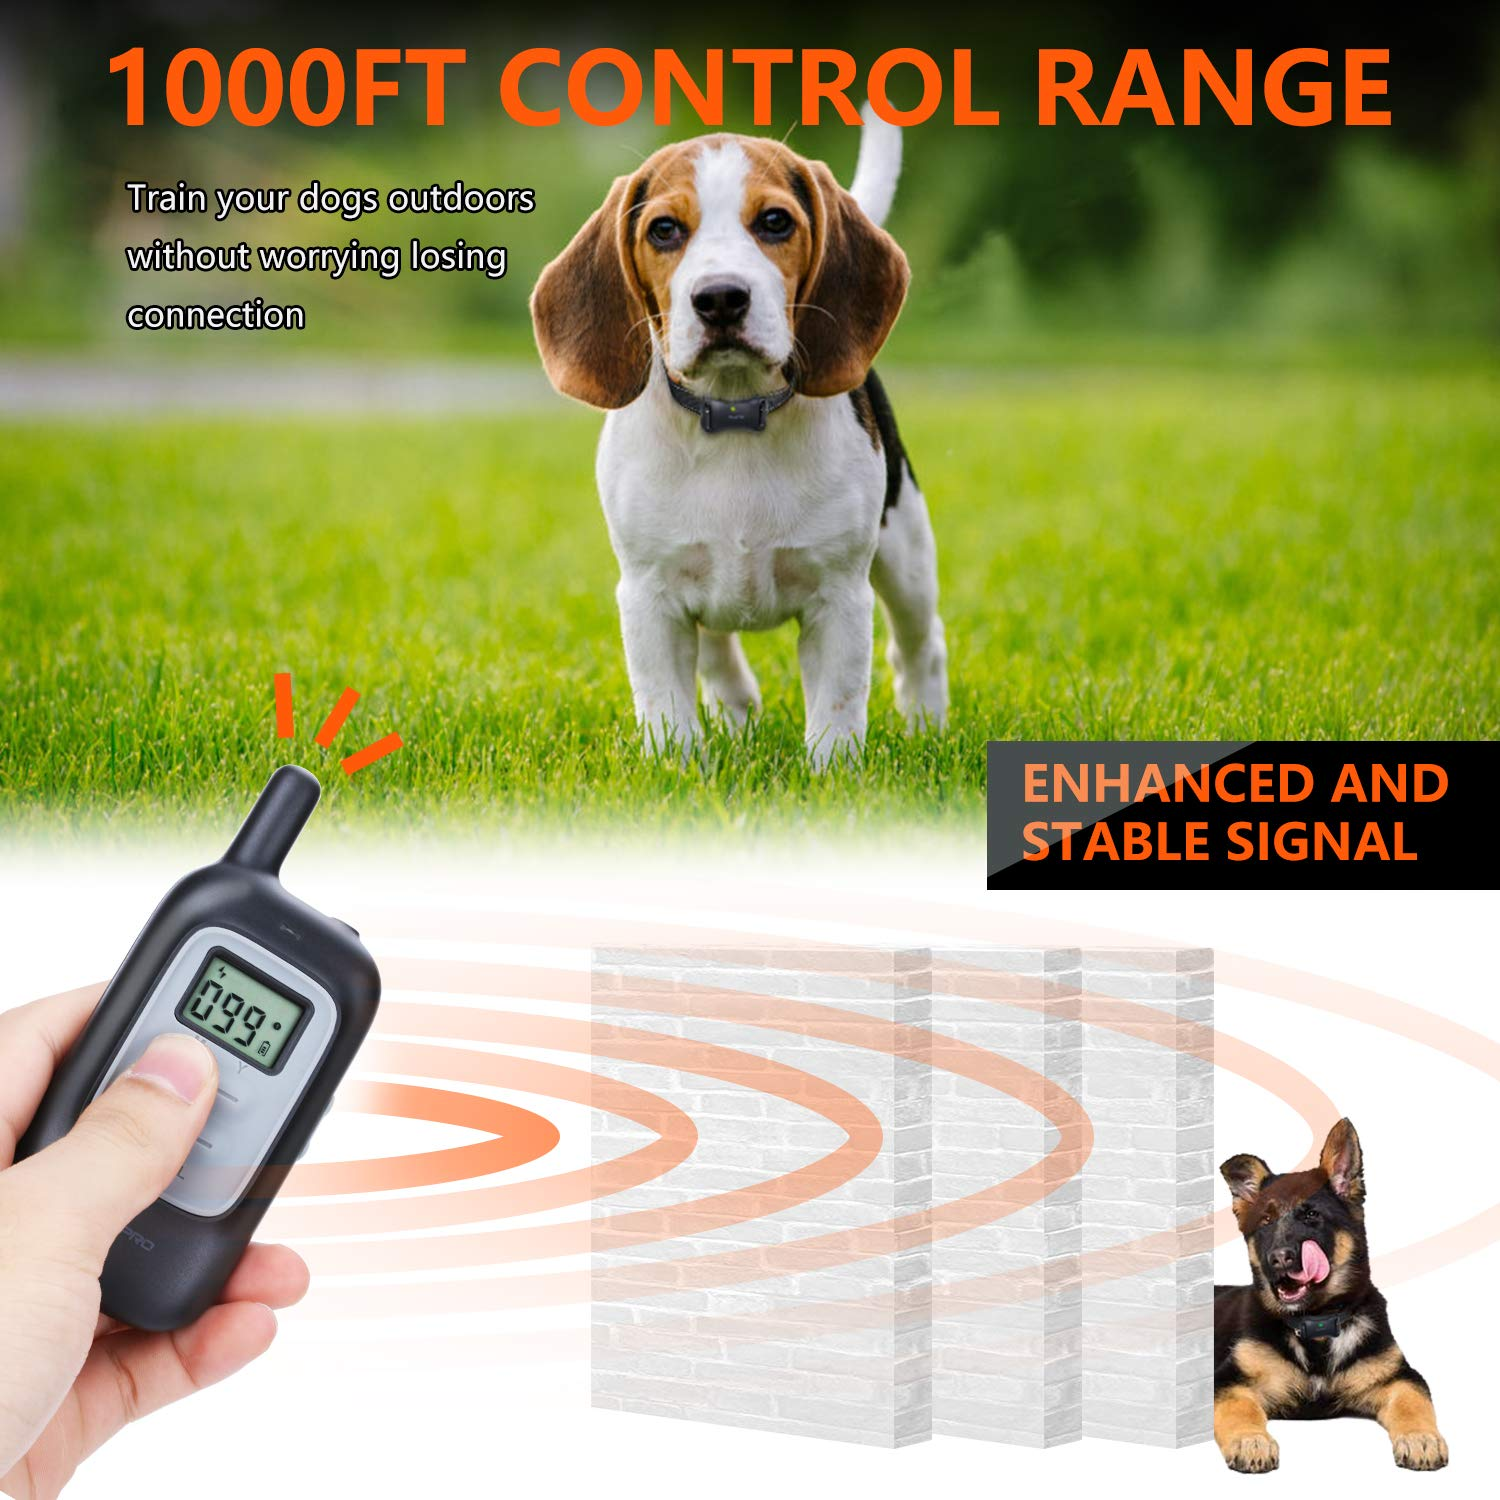 Shock Collar for Dogs - Dog Training Collar with Remote 1000Ft Rechargeable Rainproof Anti Bark E Collar,Beep Vibration Shock for Small Medium Large Dogs (2018 New) by MOSPRO (Image #4)